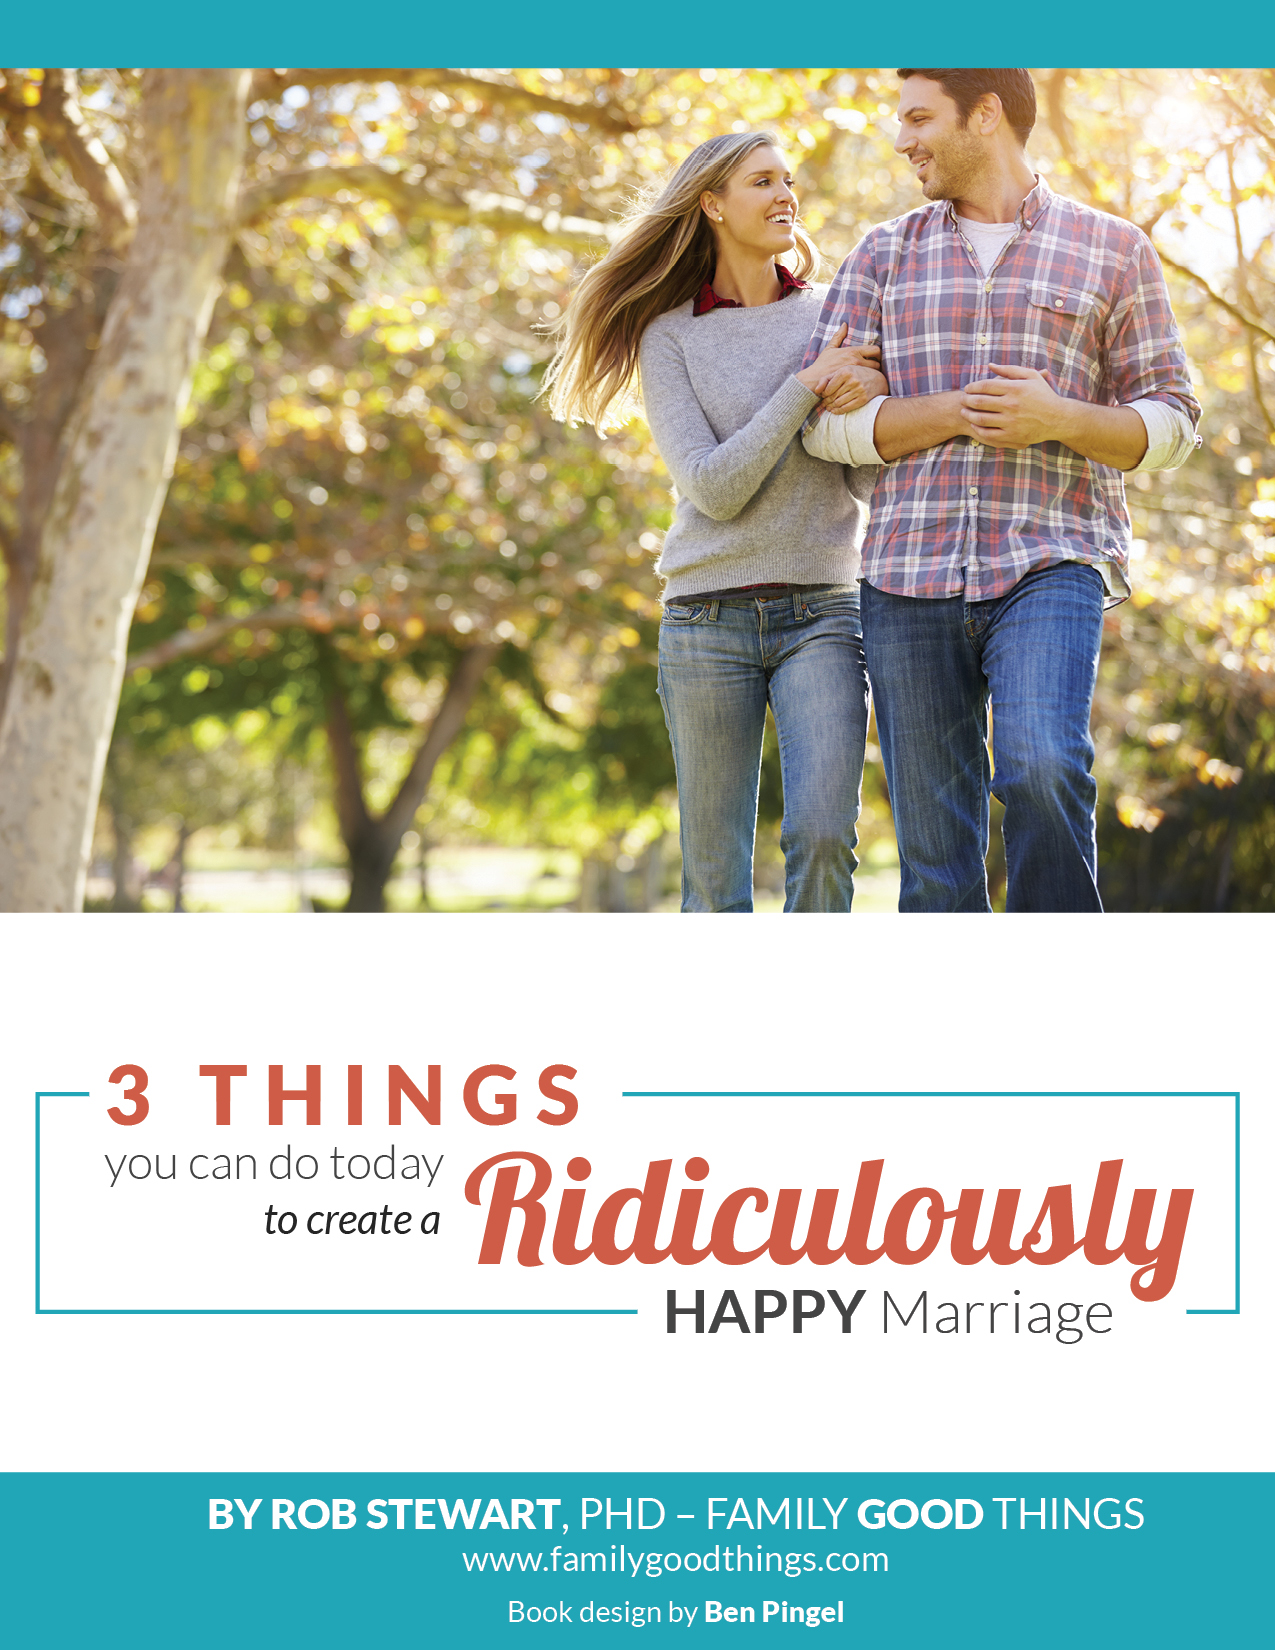 3 Things You Can Do Today to Create a Ridiculously Happy Marriage